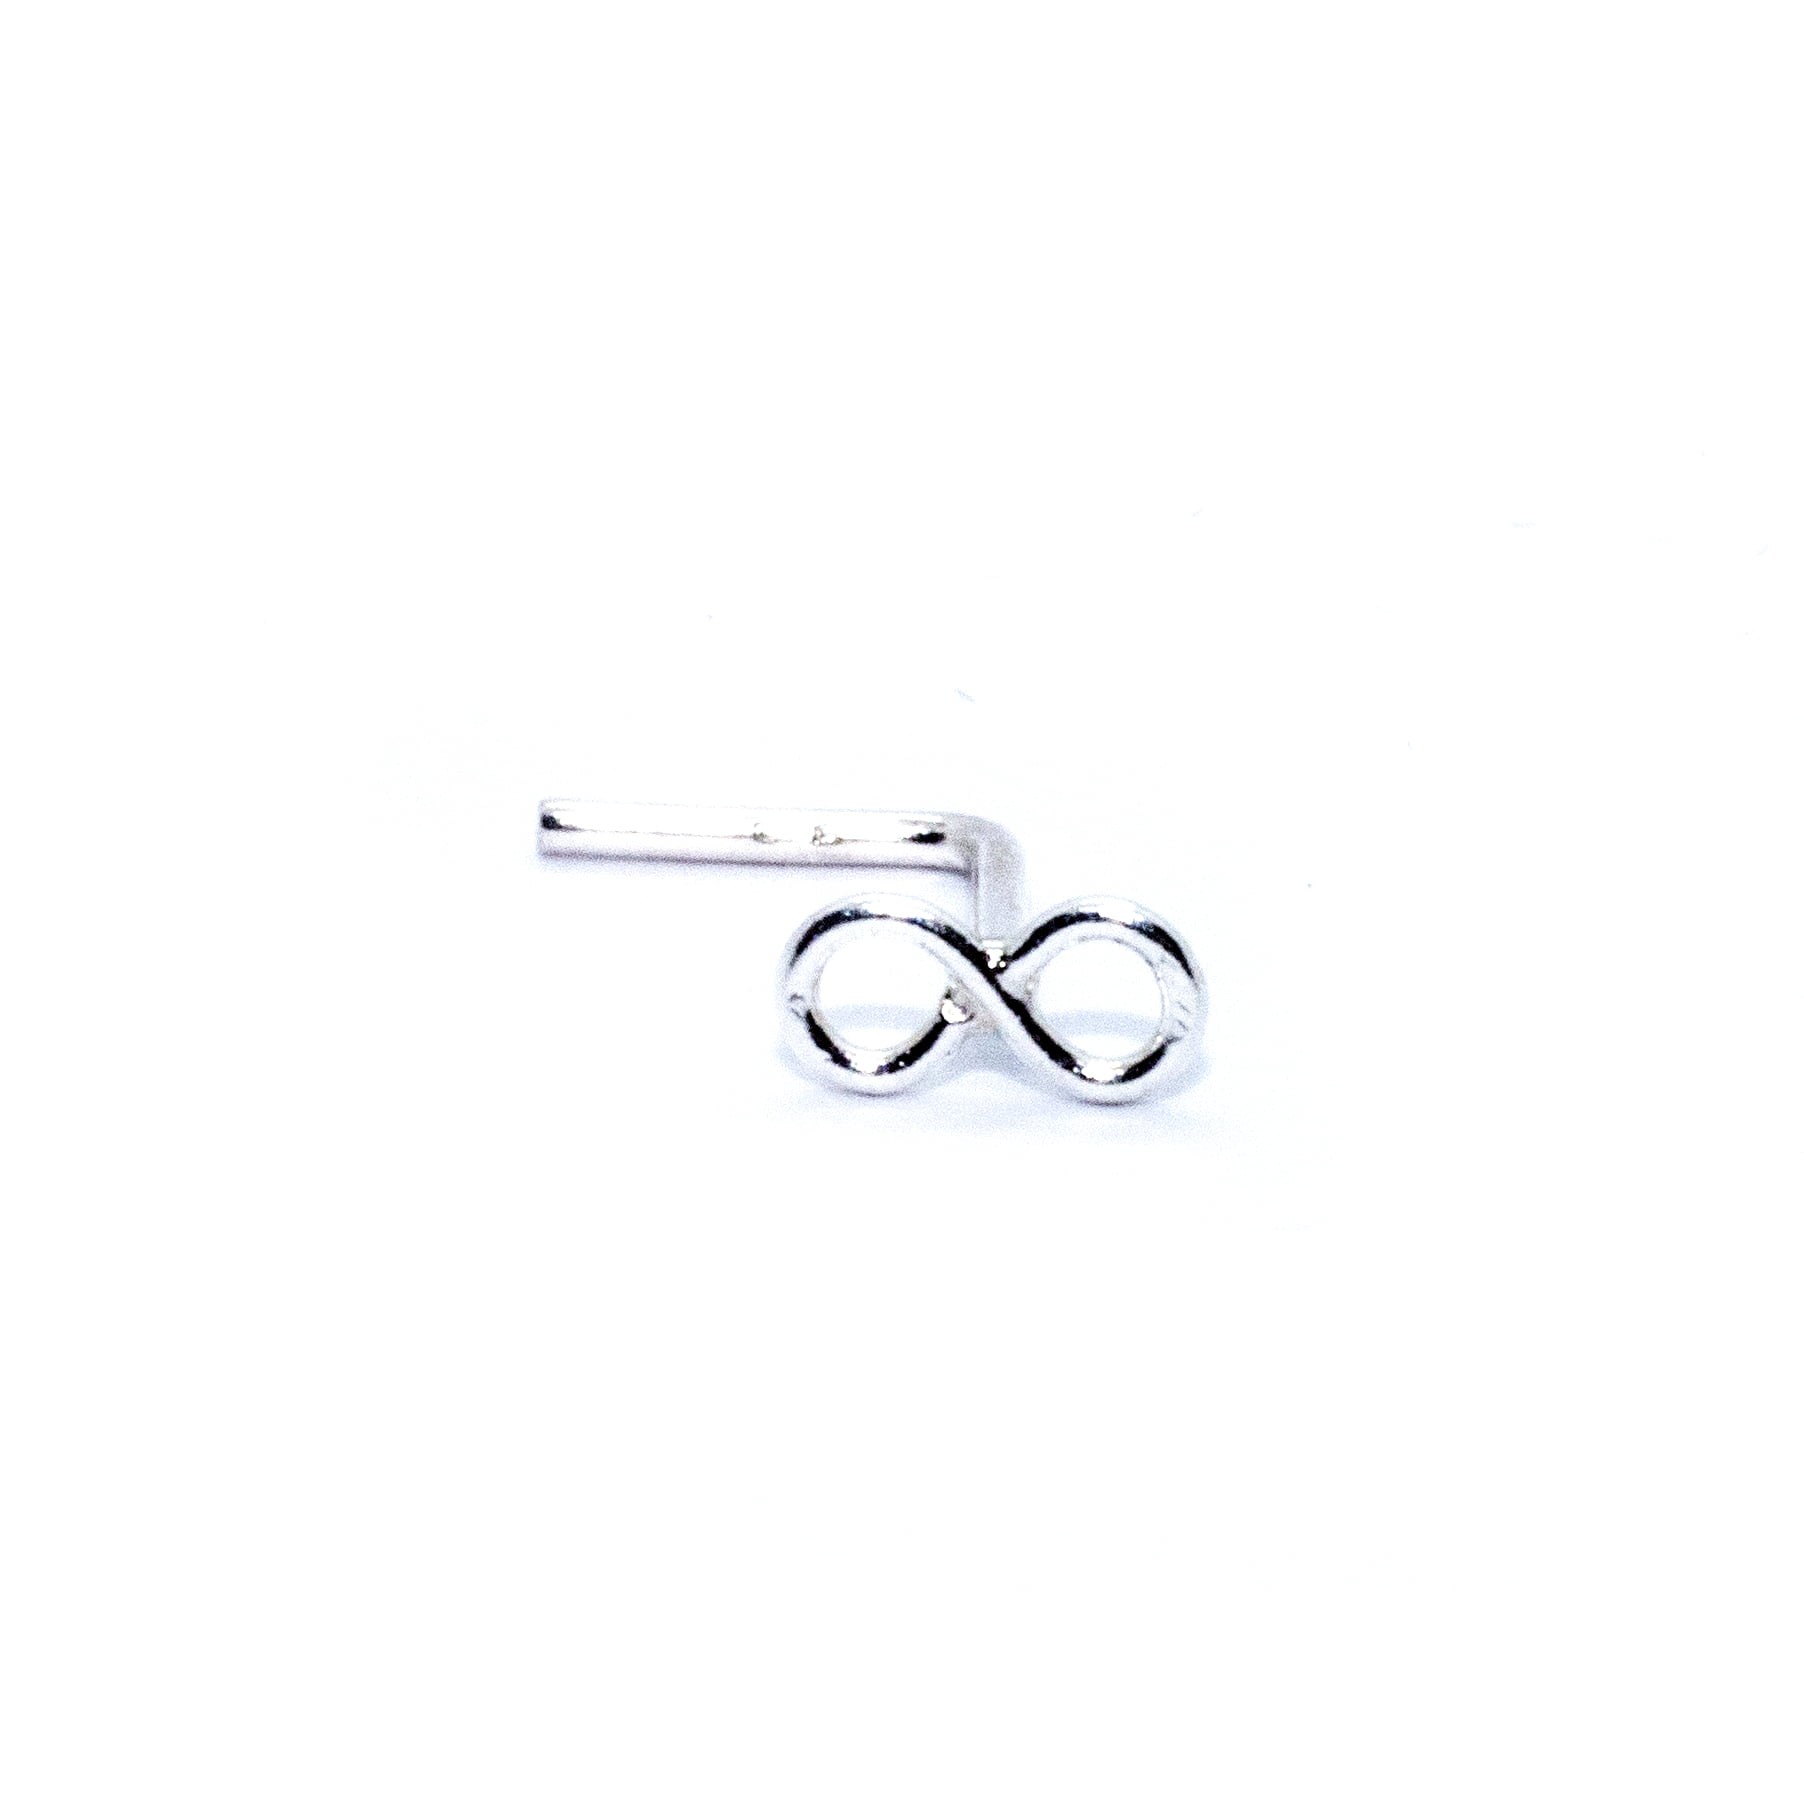 Infinity nose stud in sterling silver